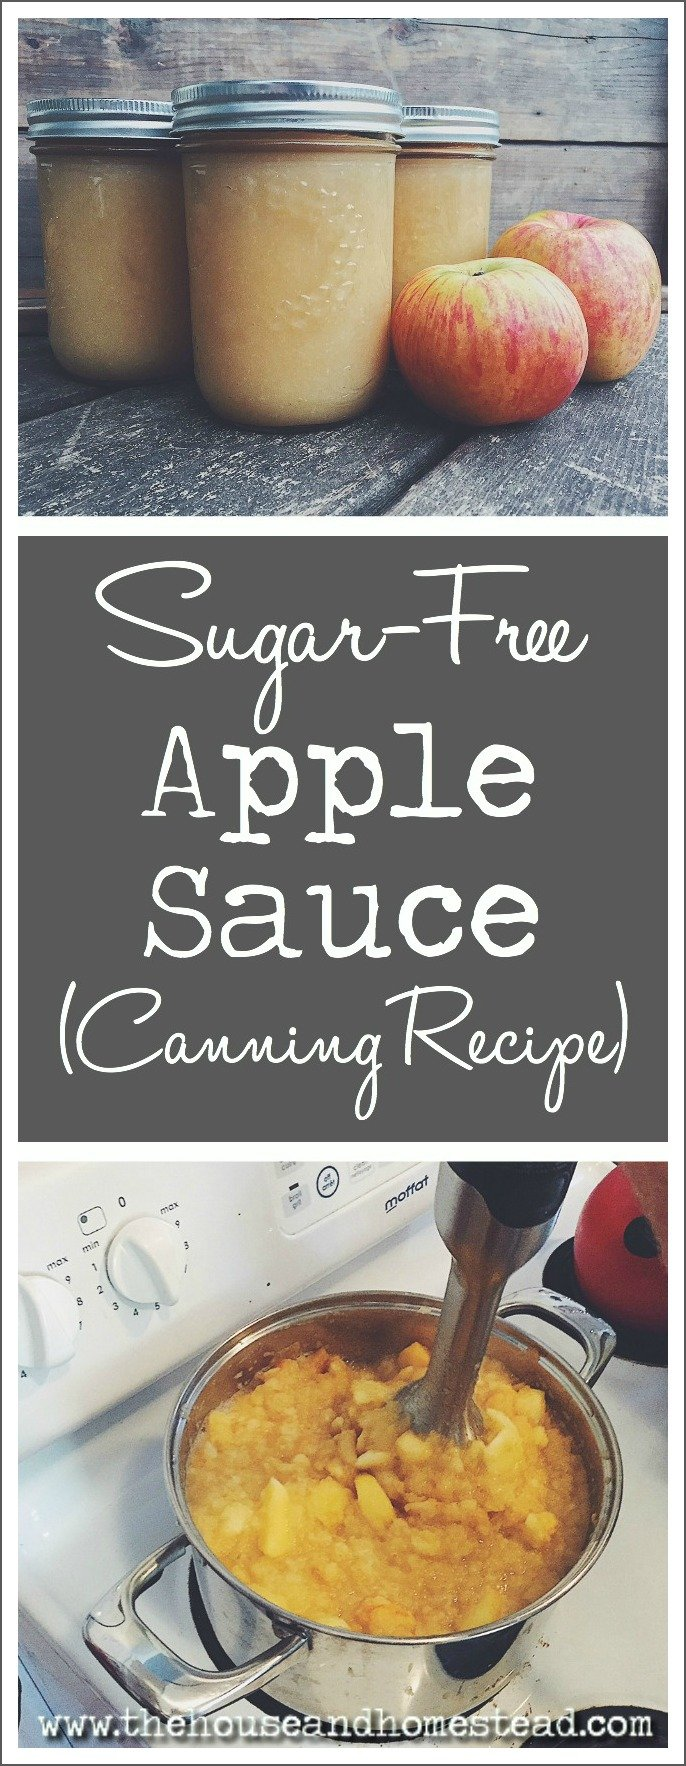 This sugar-free homemade applesauce is great for baking, baby food or eating straight